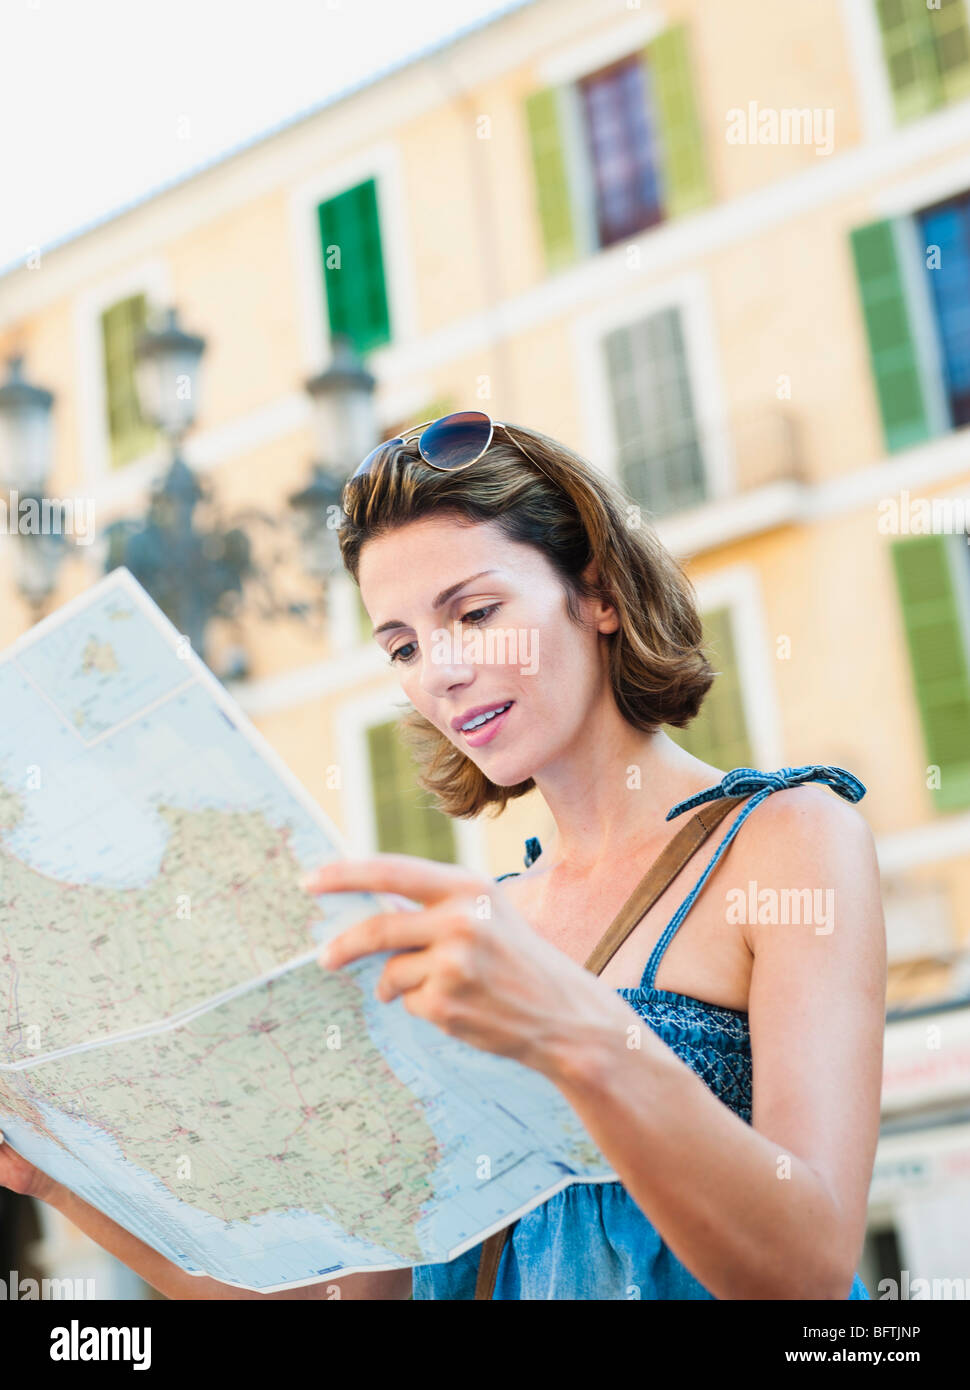 woman looking at a map - Stock Image